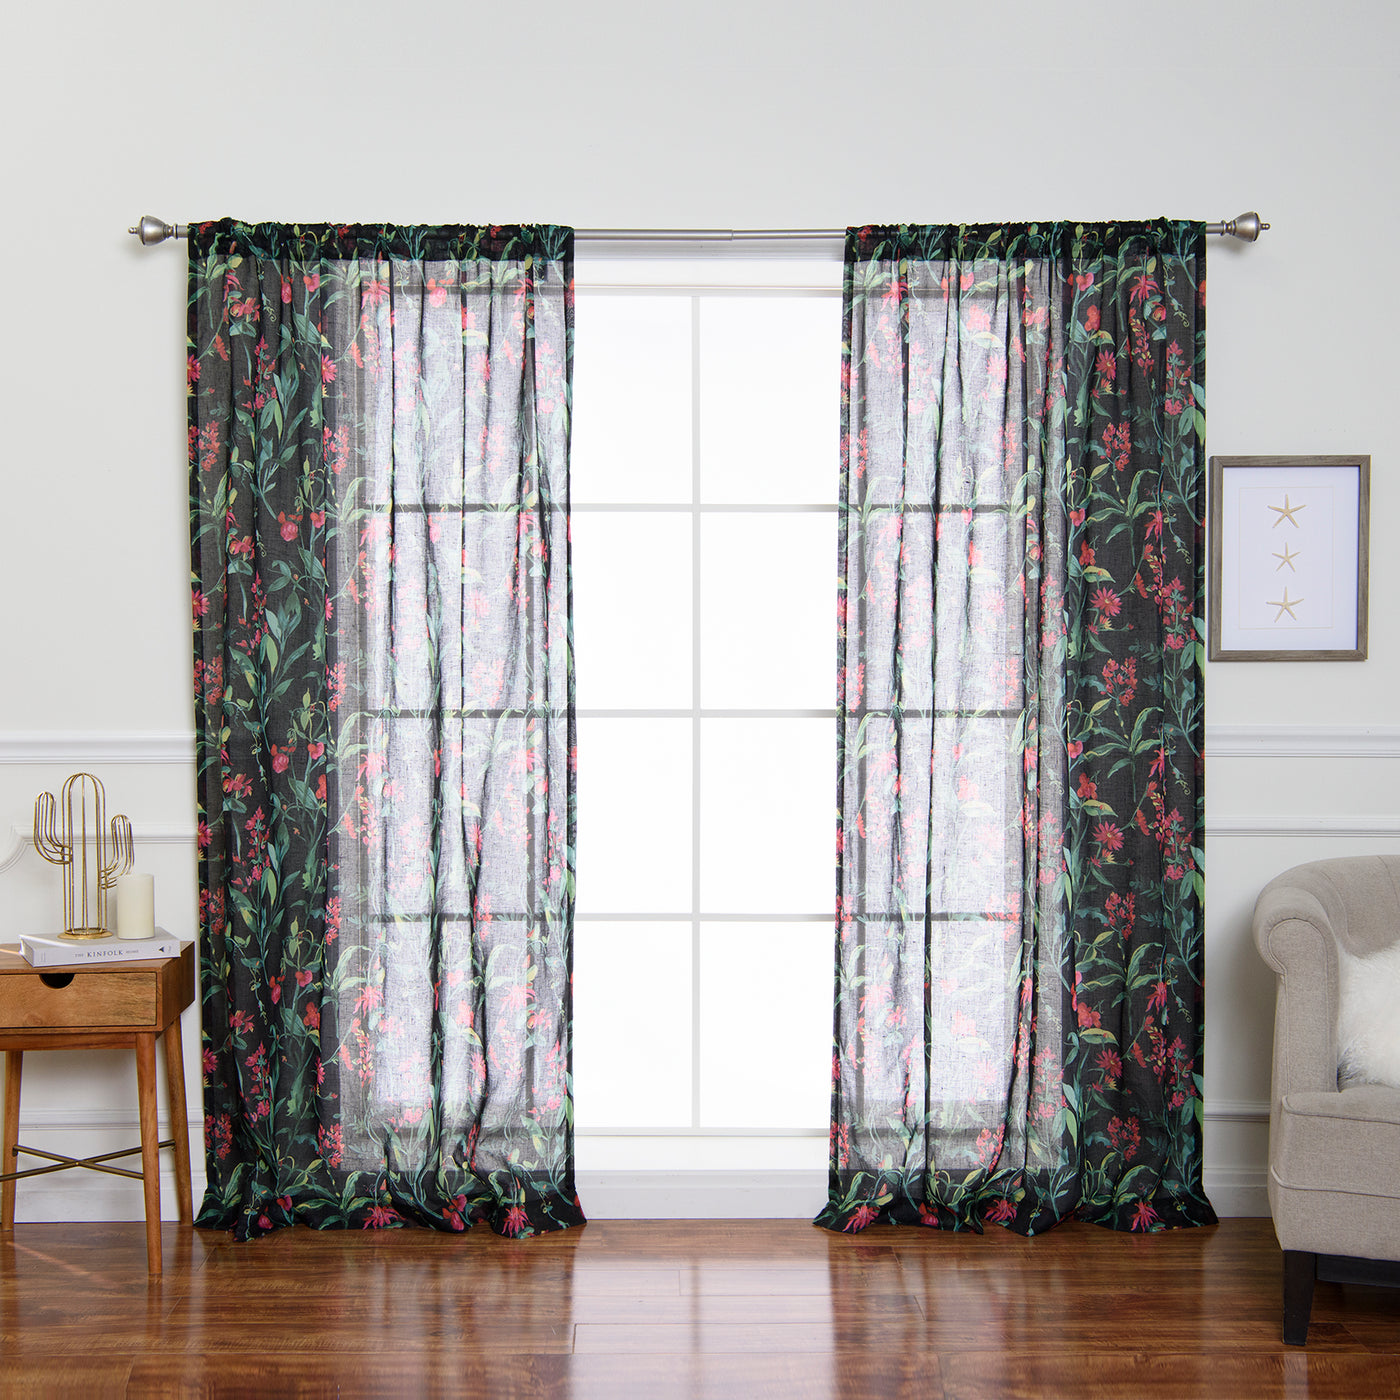 Sheer Floral Curtains